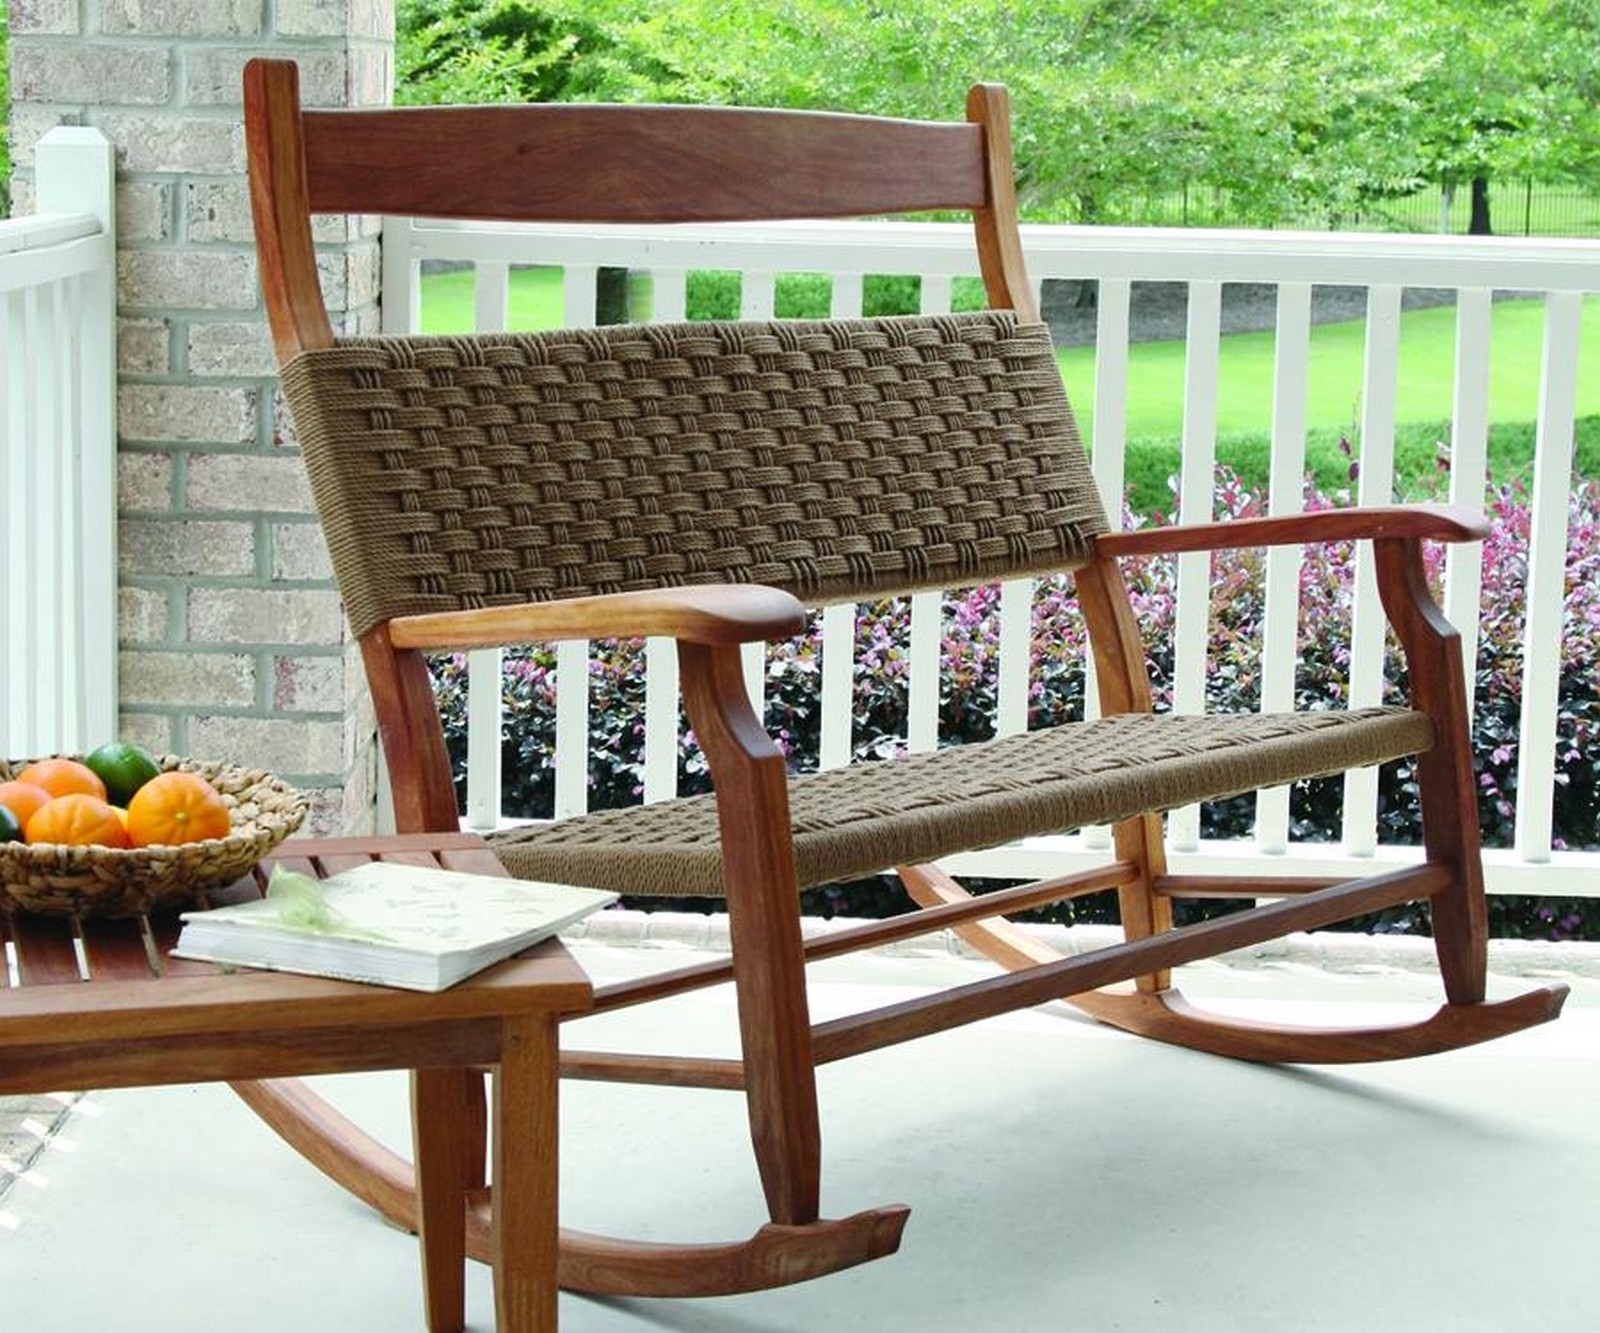 Uncategorized : Wicker Outdoor Rocking Chair In Beautiful Martha For Most Recent All Weather Patio Rocking Chairs (Gallery 15 of 20)